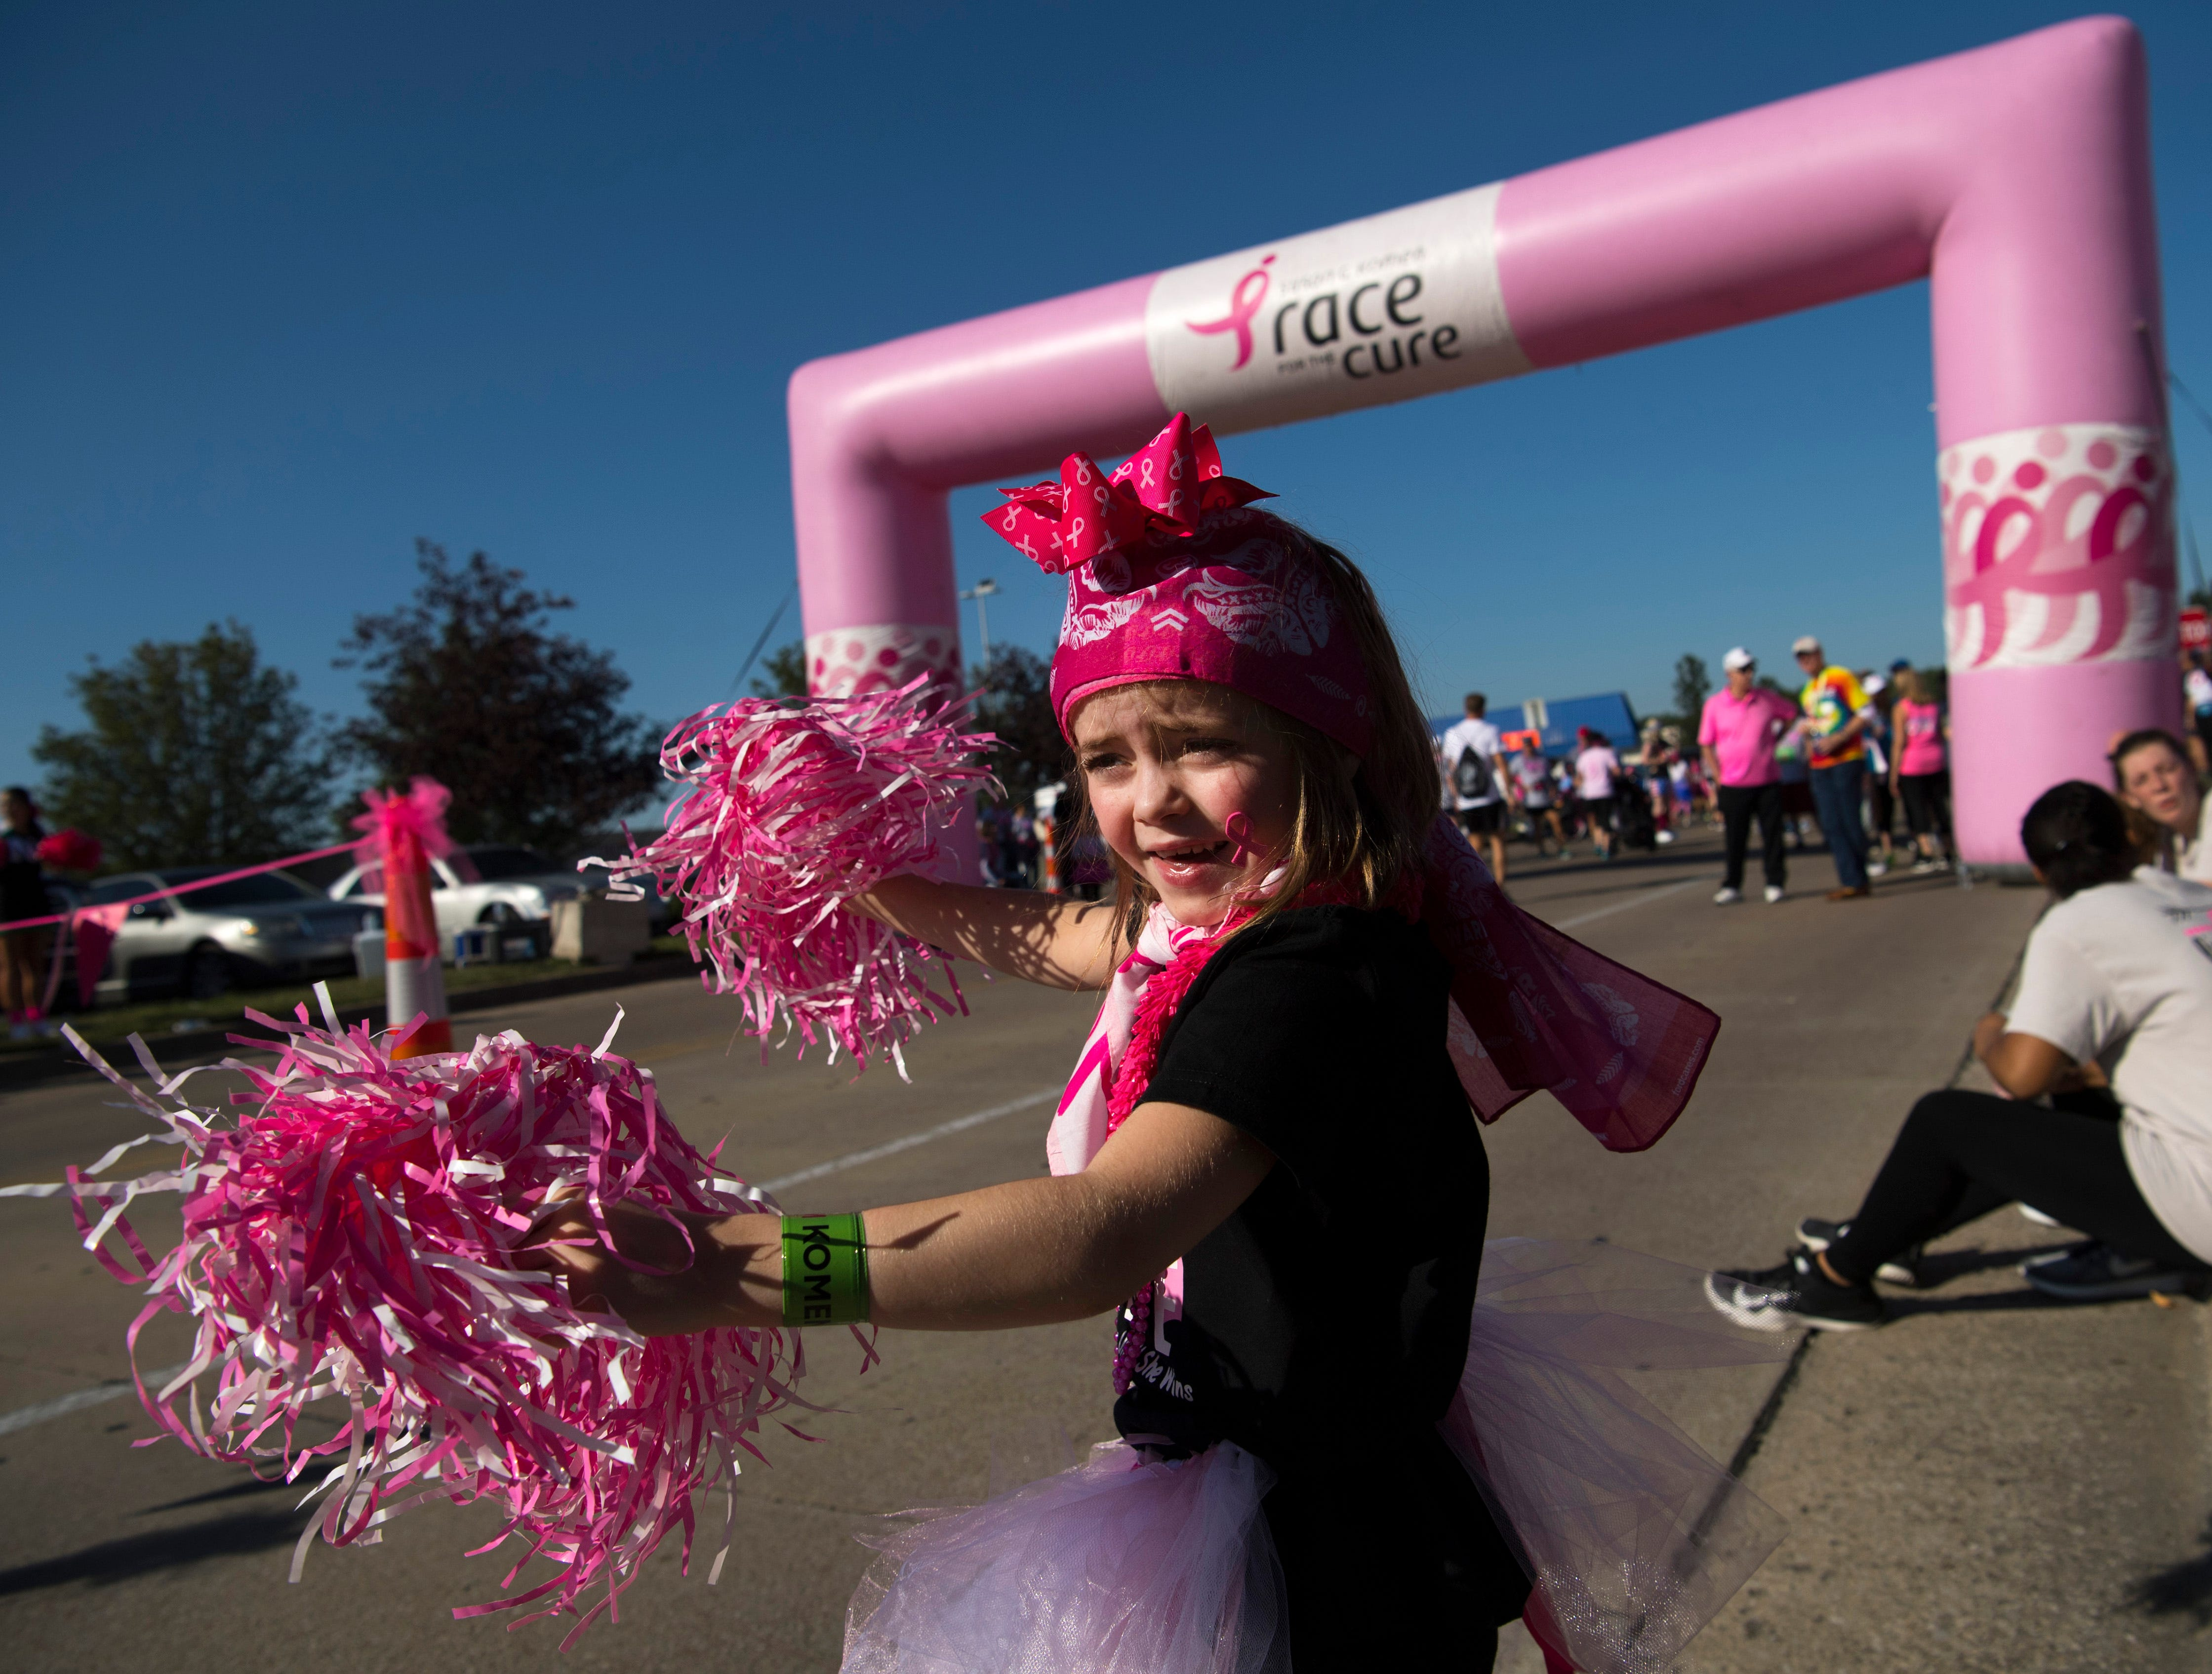 Lyric O'Rear, 6, of Madisonville, Ky., cheers finishers at the 2018 Susan G. Komen Race for the Cure at Eastland Mall Sunday morning. She was waiting for her grandmother, Jennifer Stone, a breast cancer survivor, to cross the finish line.